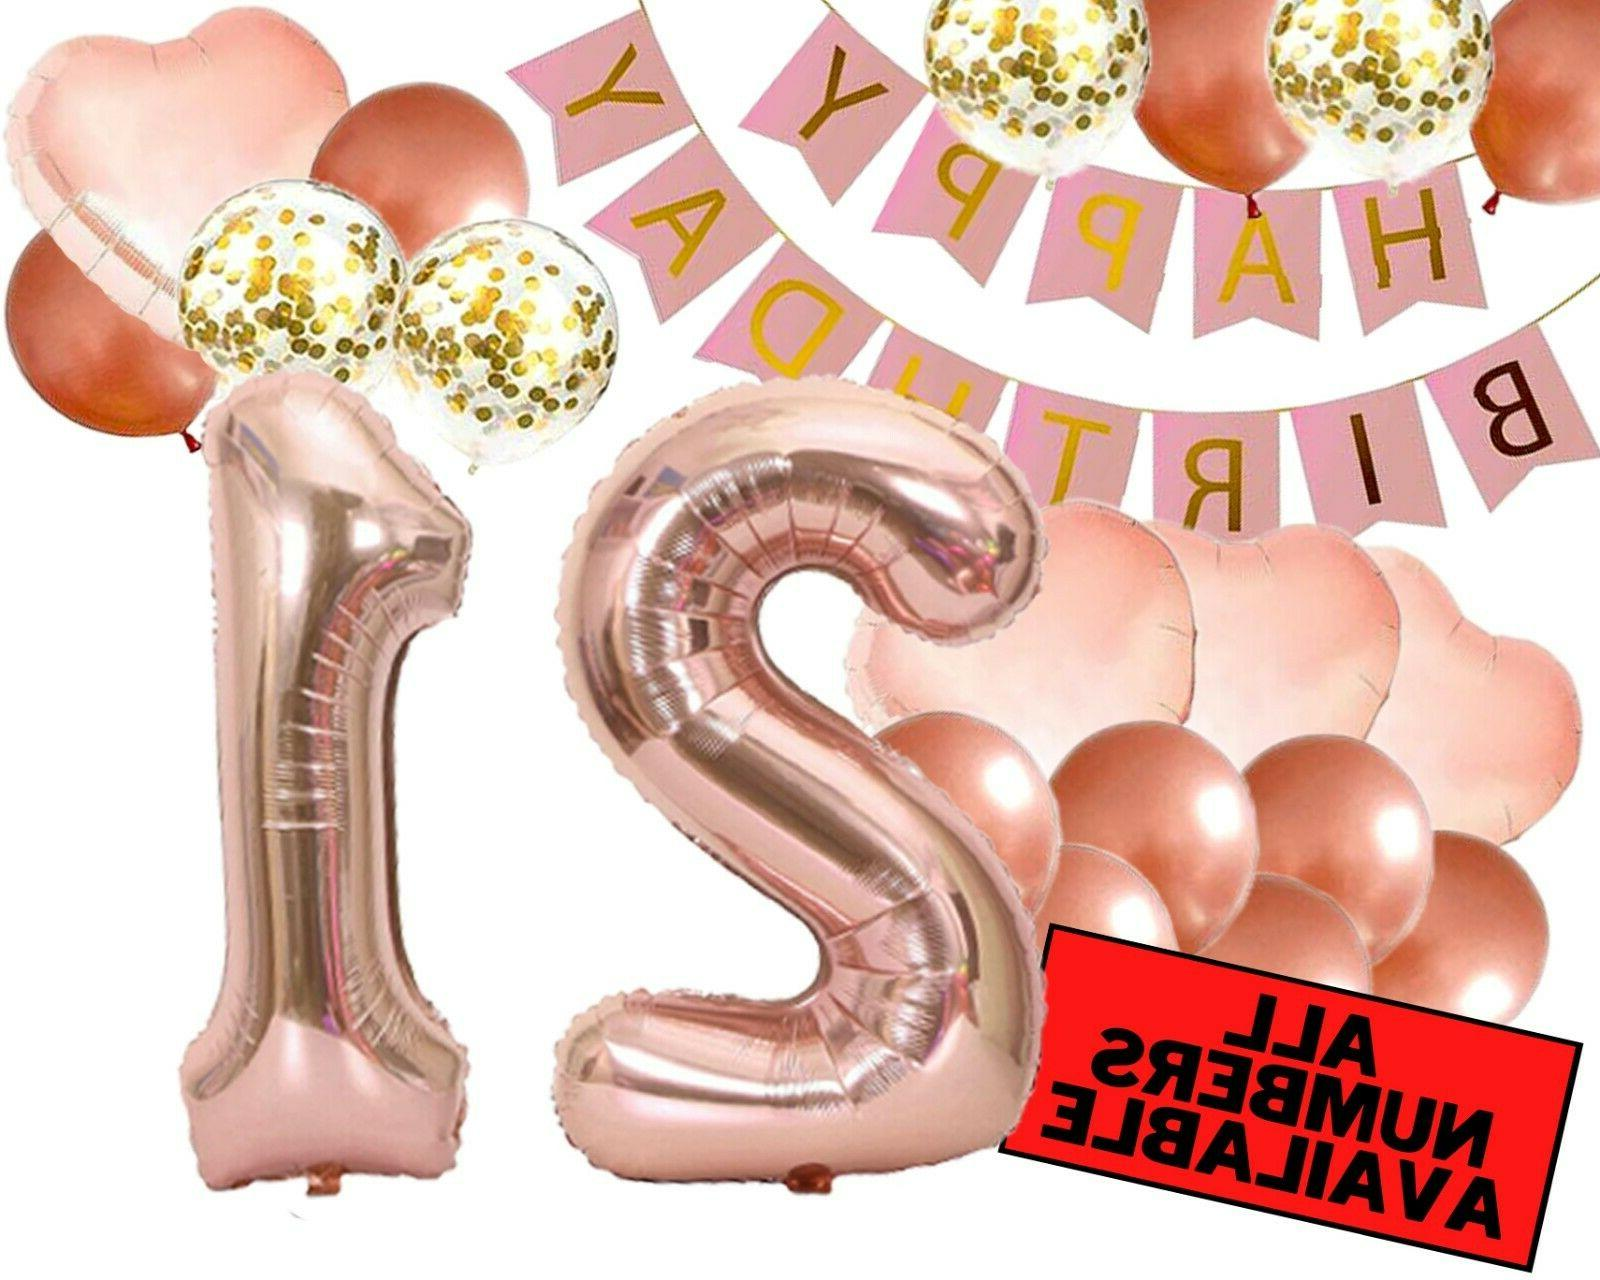 21st birthday decorations for her pink